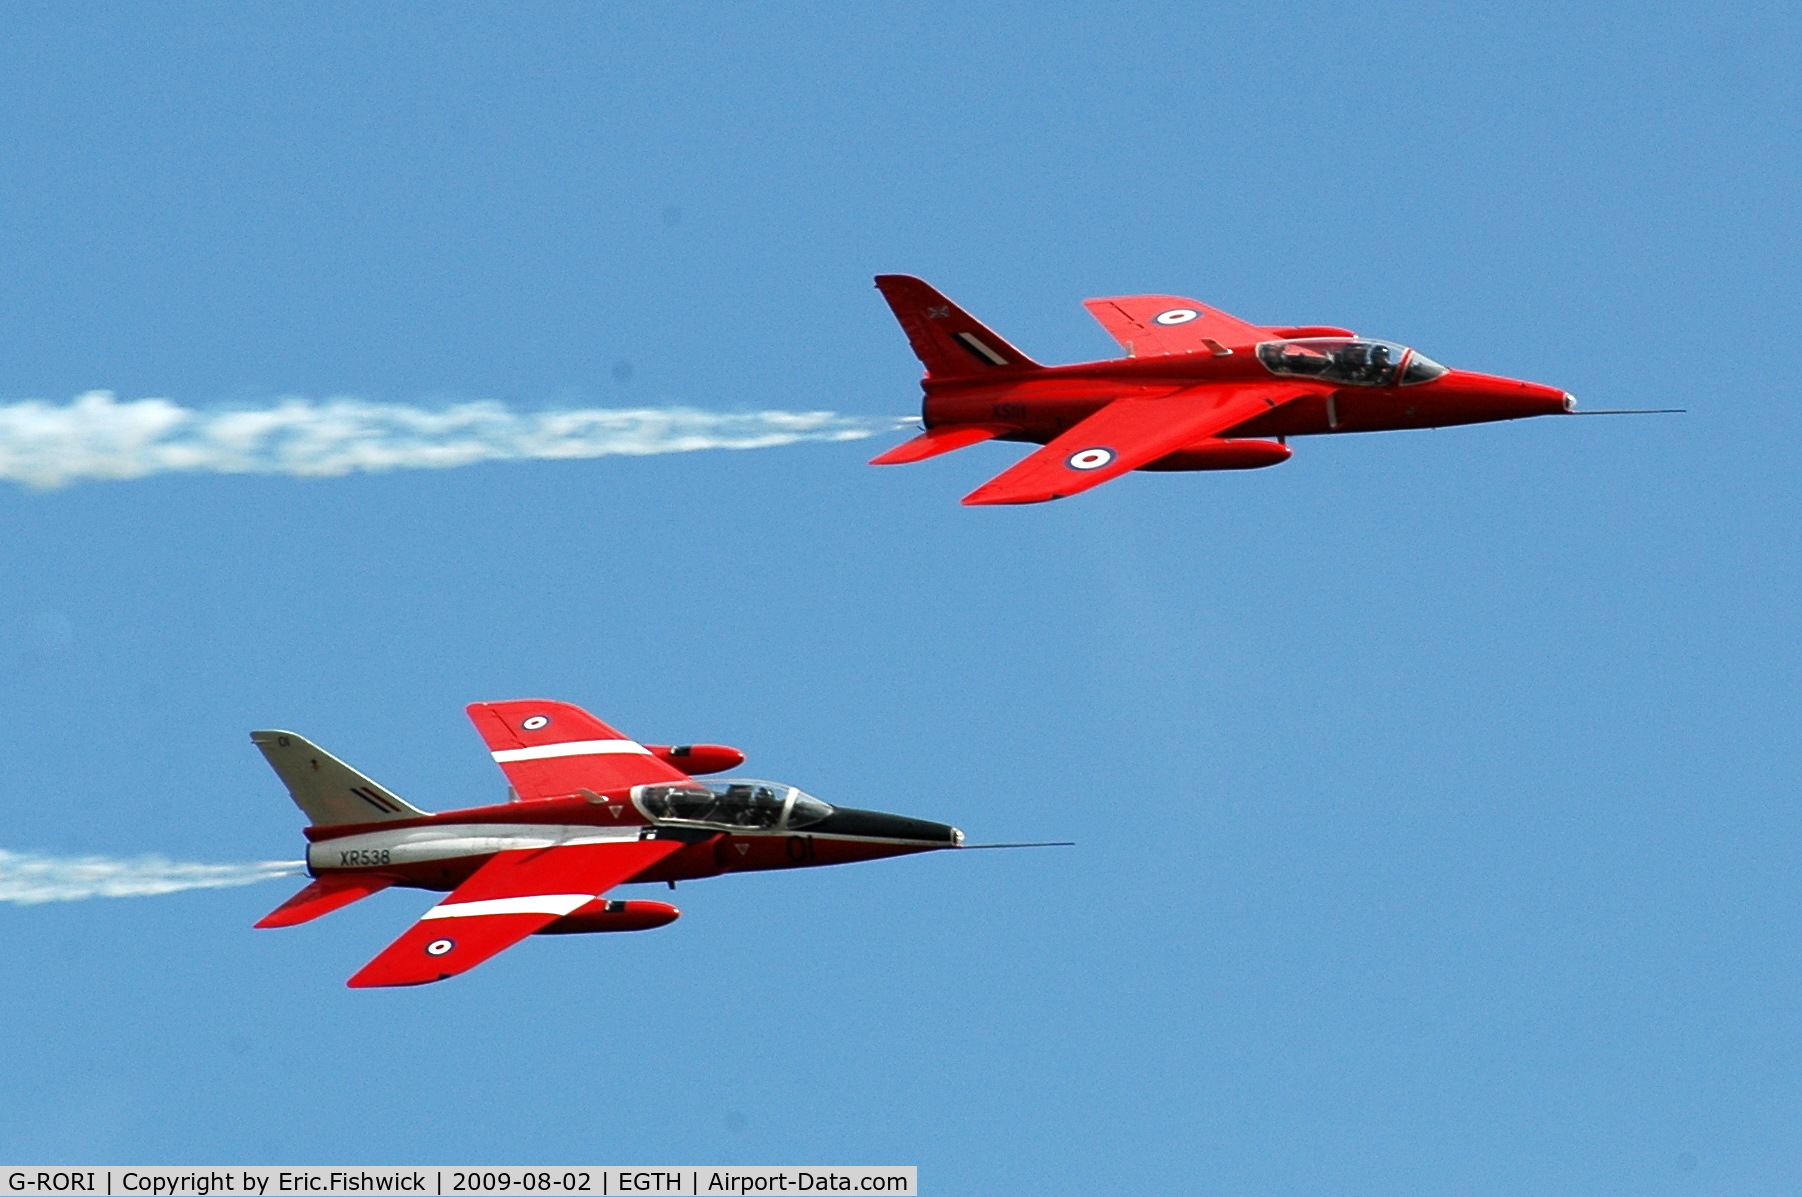 G-RORI, 1963 Hawker Siddeley Gnat T.1 C/N FL549, Two Folland Gnat T1 Trainers at Shuttleworth Military Pagent Air Display  Aug 09